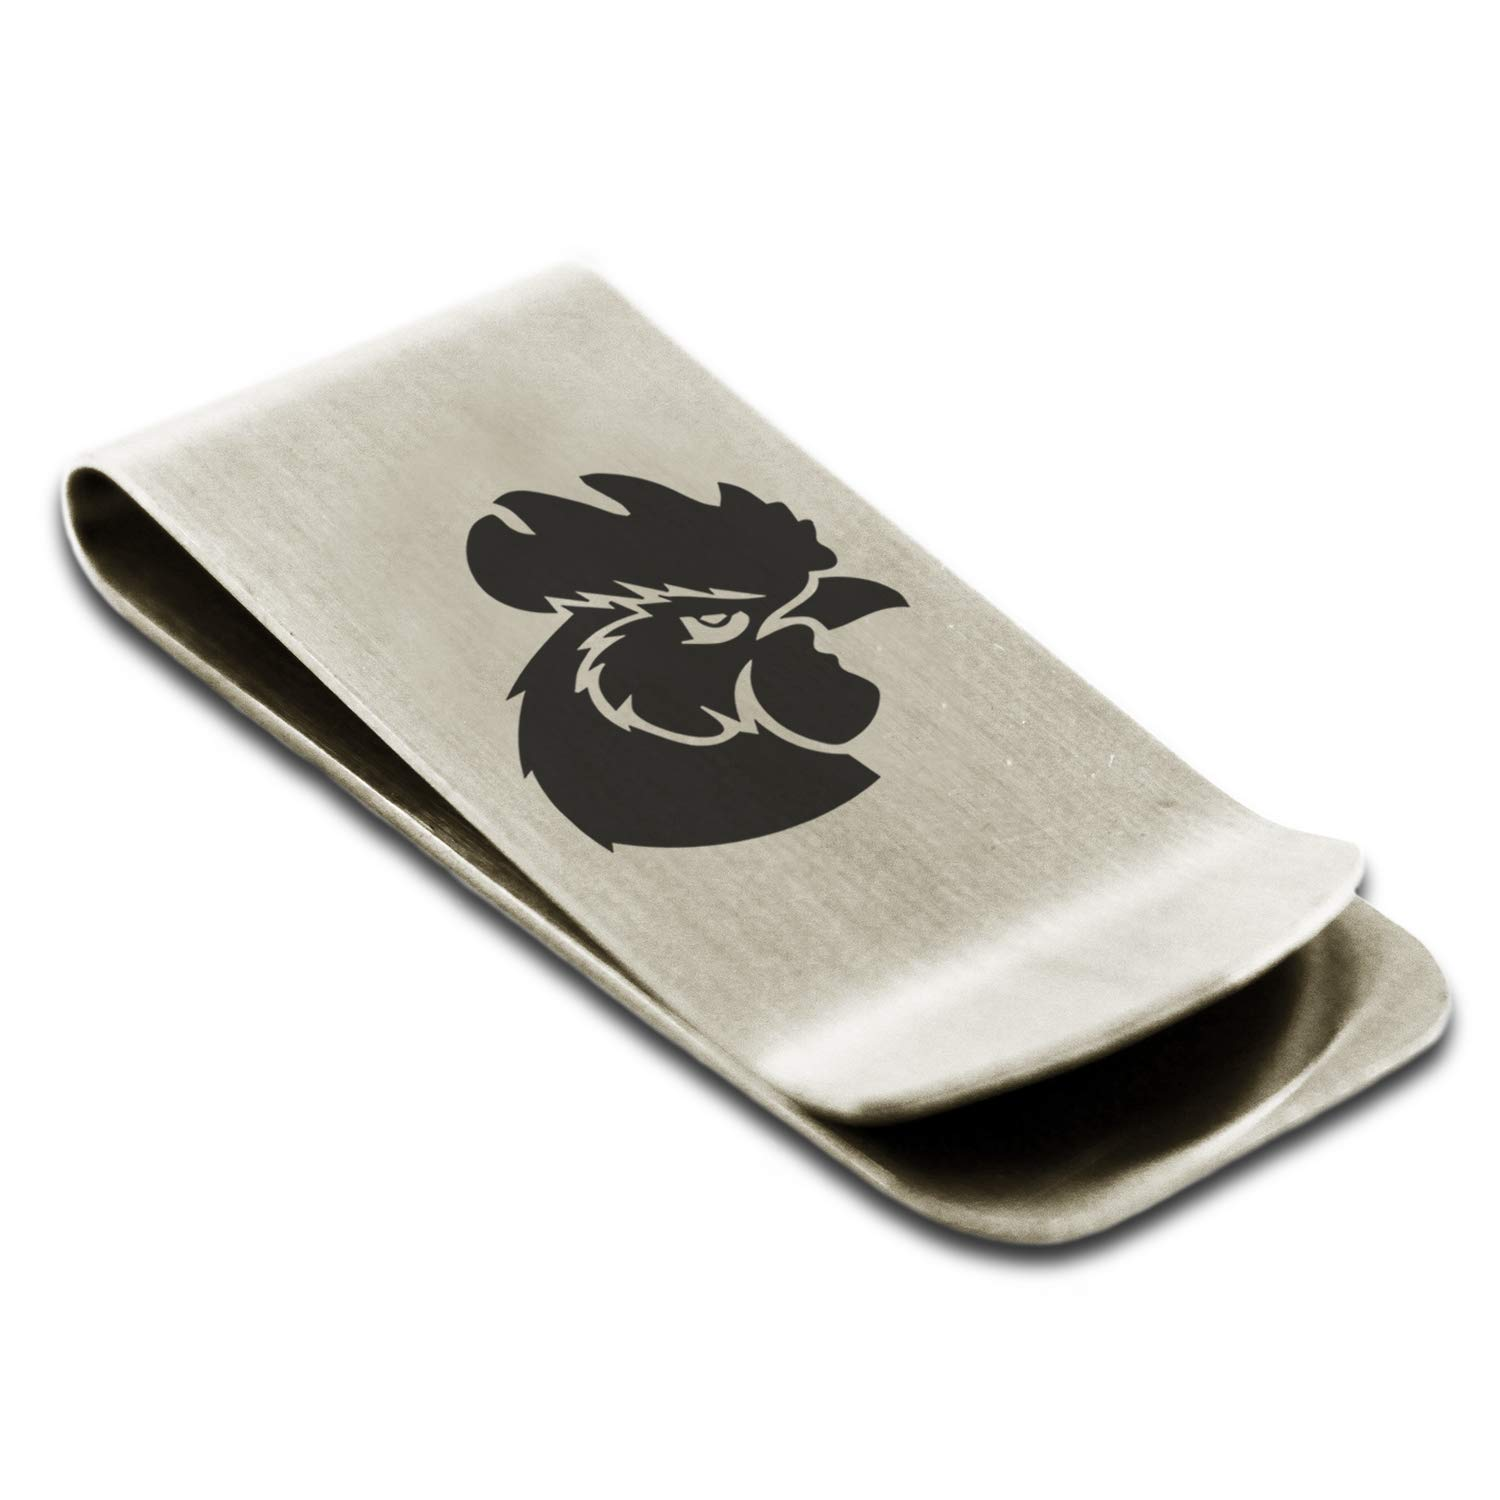 Stainless Steel Rooster Money Clip Credit Card Holder